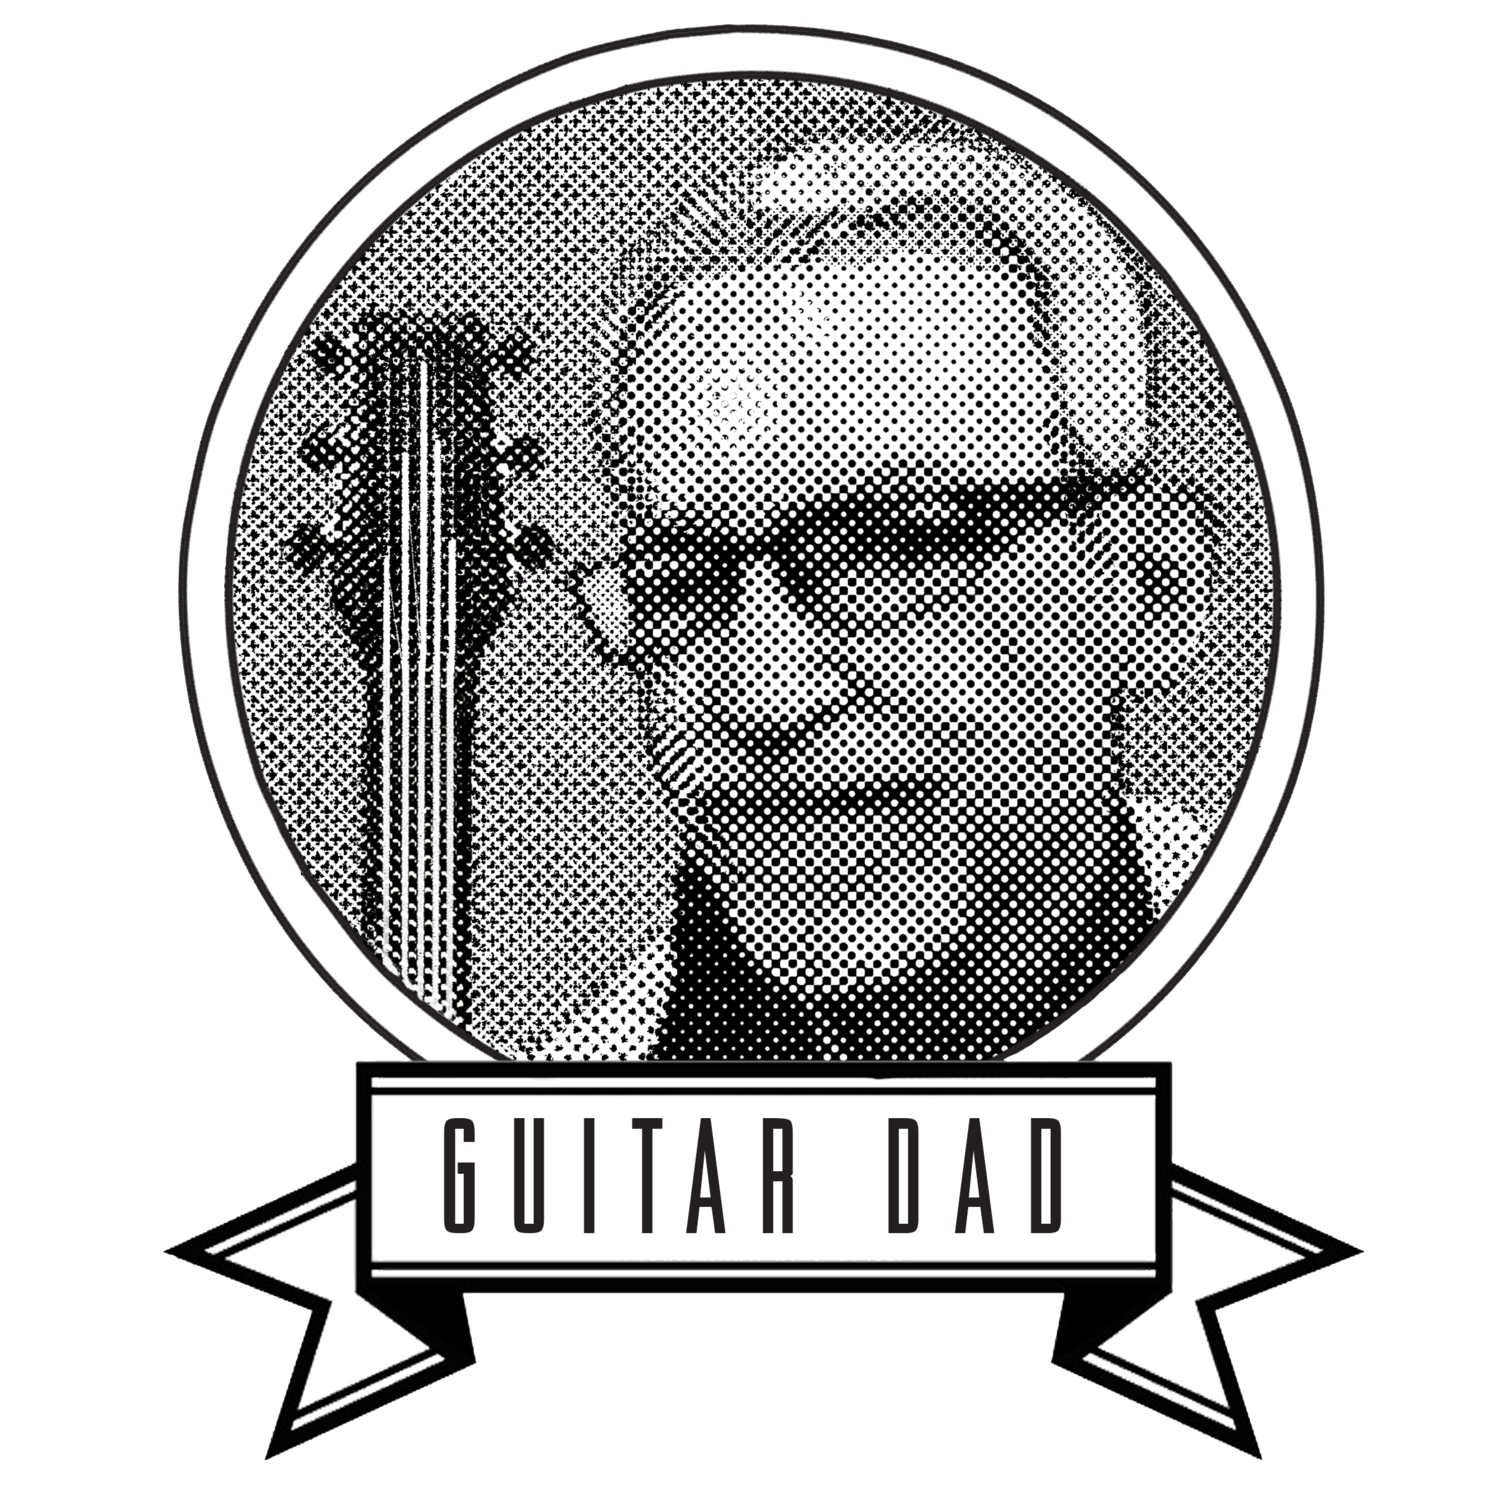 Guitar Dad presents